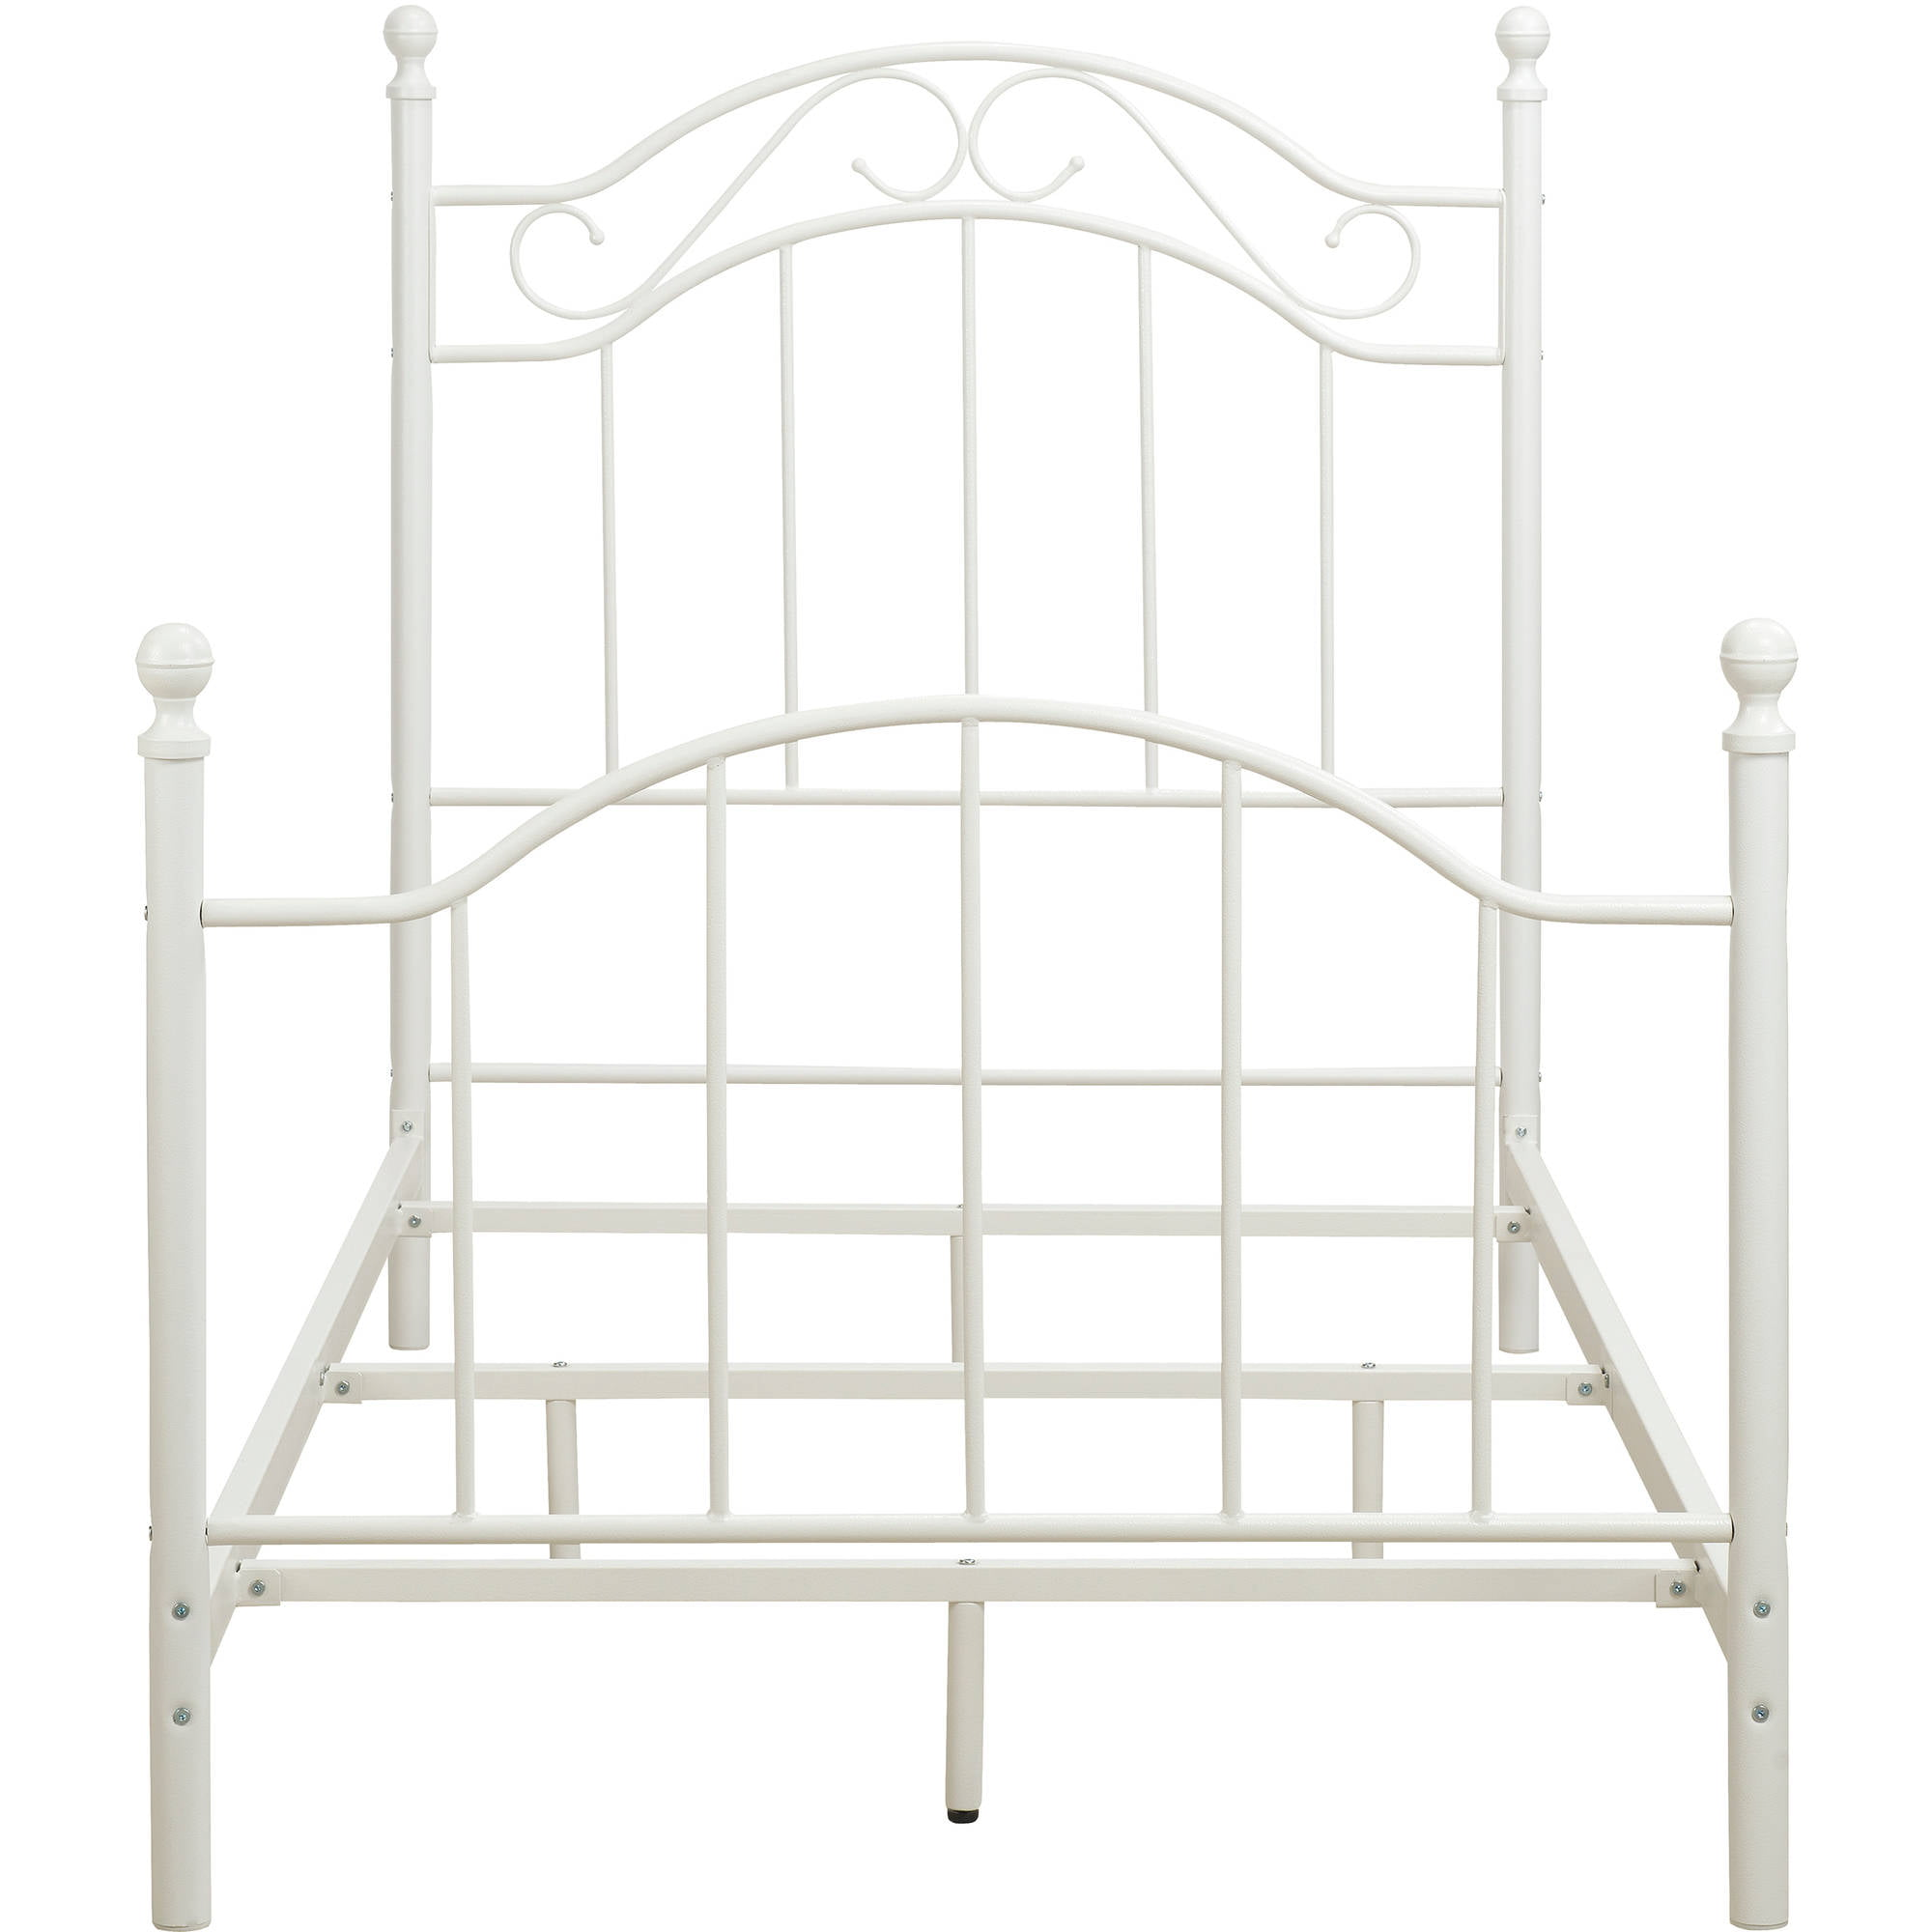 Fresh Twin Metal Bed Frame Plans Free